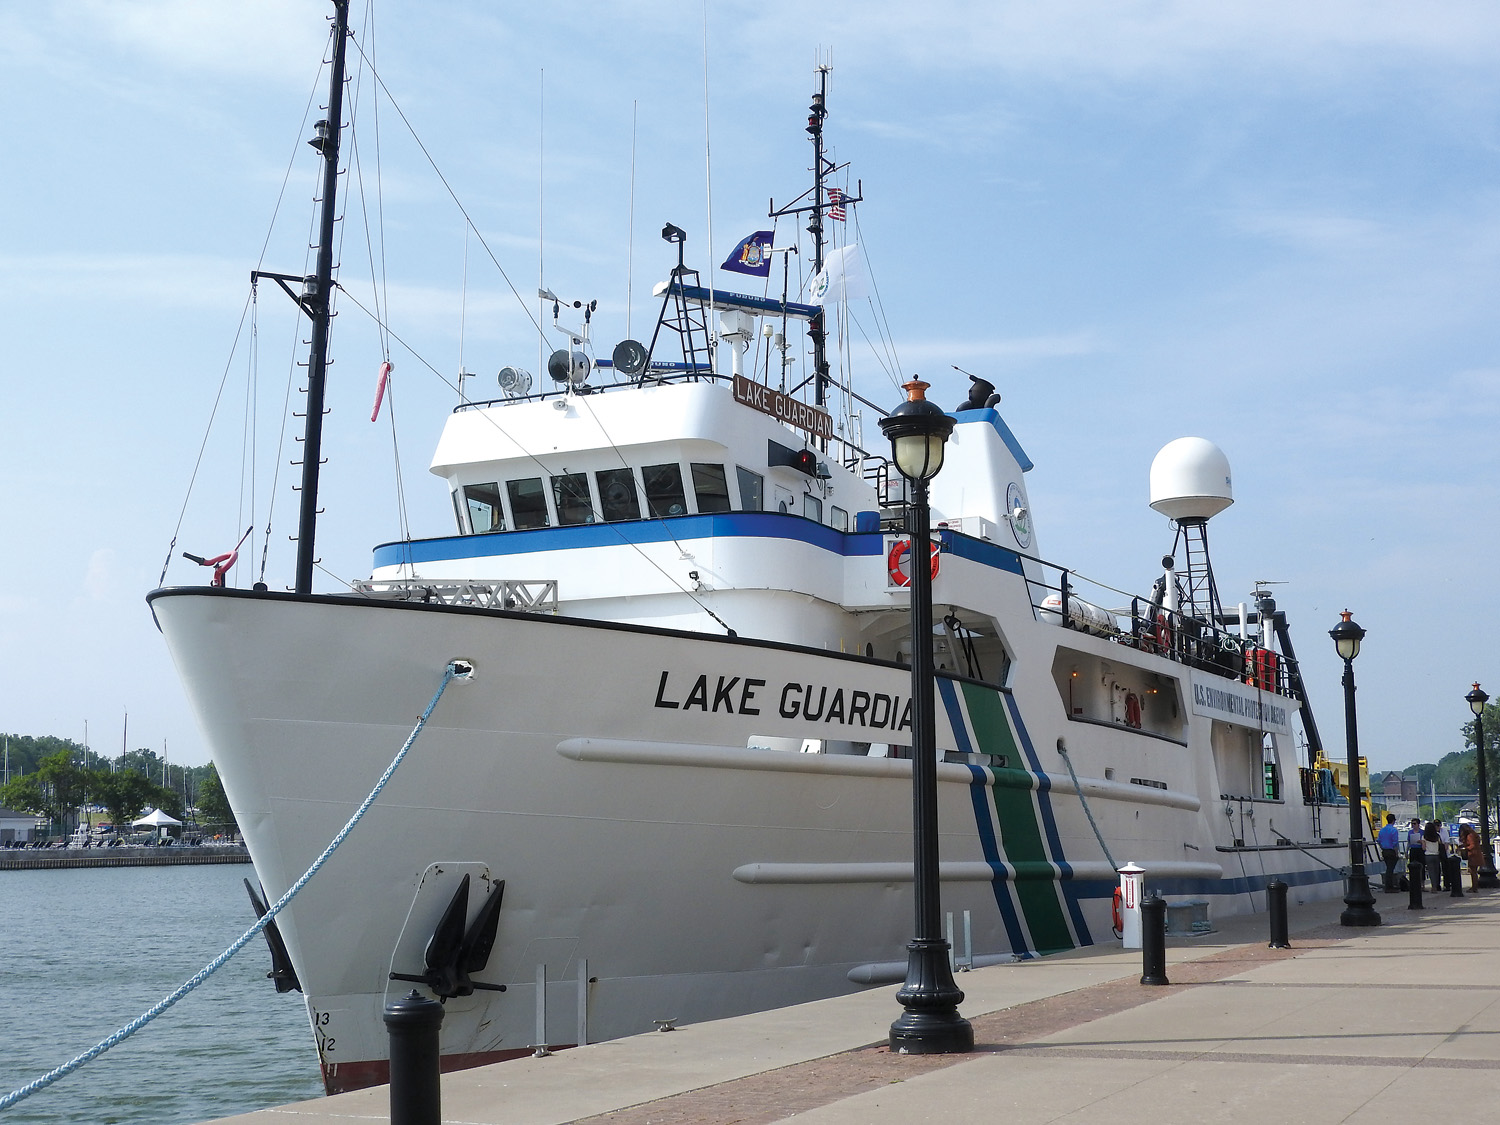 The Research Vessel Lake Guardian is the largest research vessel in the EPA fleet and the largest research vessel operating on the Great Lakes. The Lake Guardian sails across all five Great Lakes to support a wide range of research. This floating laboratory is used to collect samples and from these samples, scientists gather information about the physical, chemical and biological conditions of the Great Lakes. Their work has created baseline and long-term datasets as well as highlighted emerging issues. Managers and policymakers use this information to make sound decisions that help protect the Great Lakes. The Water Quality Survey is one of EPA's cornerstone and longest-running monitoring programs. The survey takes place on all five Great Lakes twice a year, in the spring, when the waters are cold and well mixed, and in the summer, when the waters are warm, layered and more biologically active. The program monitors long-term trends and changes in offshore water quality (such as nutrient levels), and identifies existing issues such as hypoxia, when low oxygen levels can affect the survival of aquatic life and the quality of drinking water.